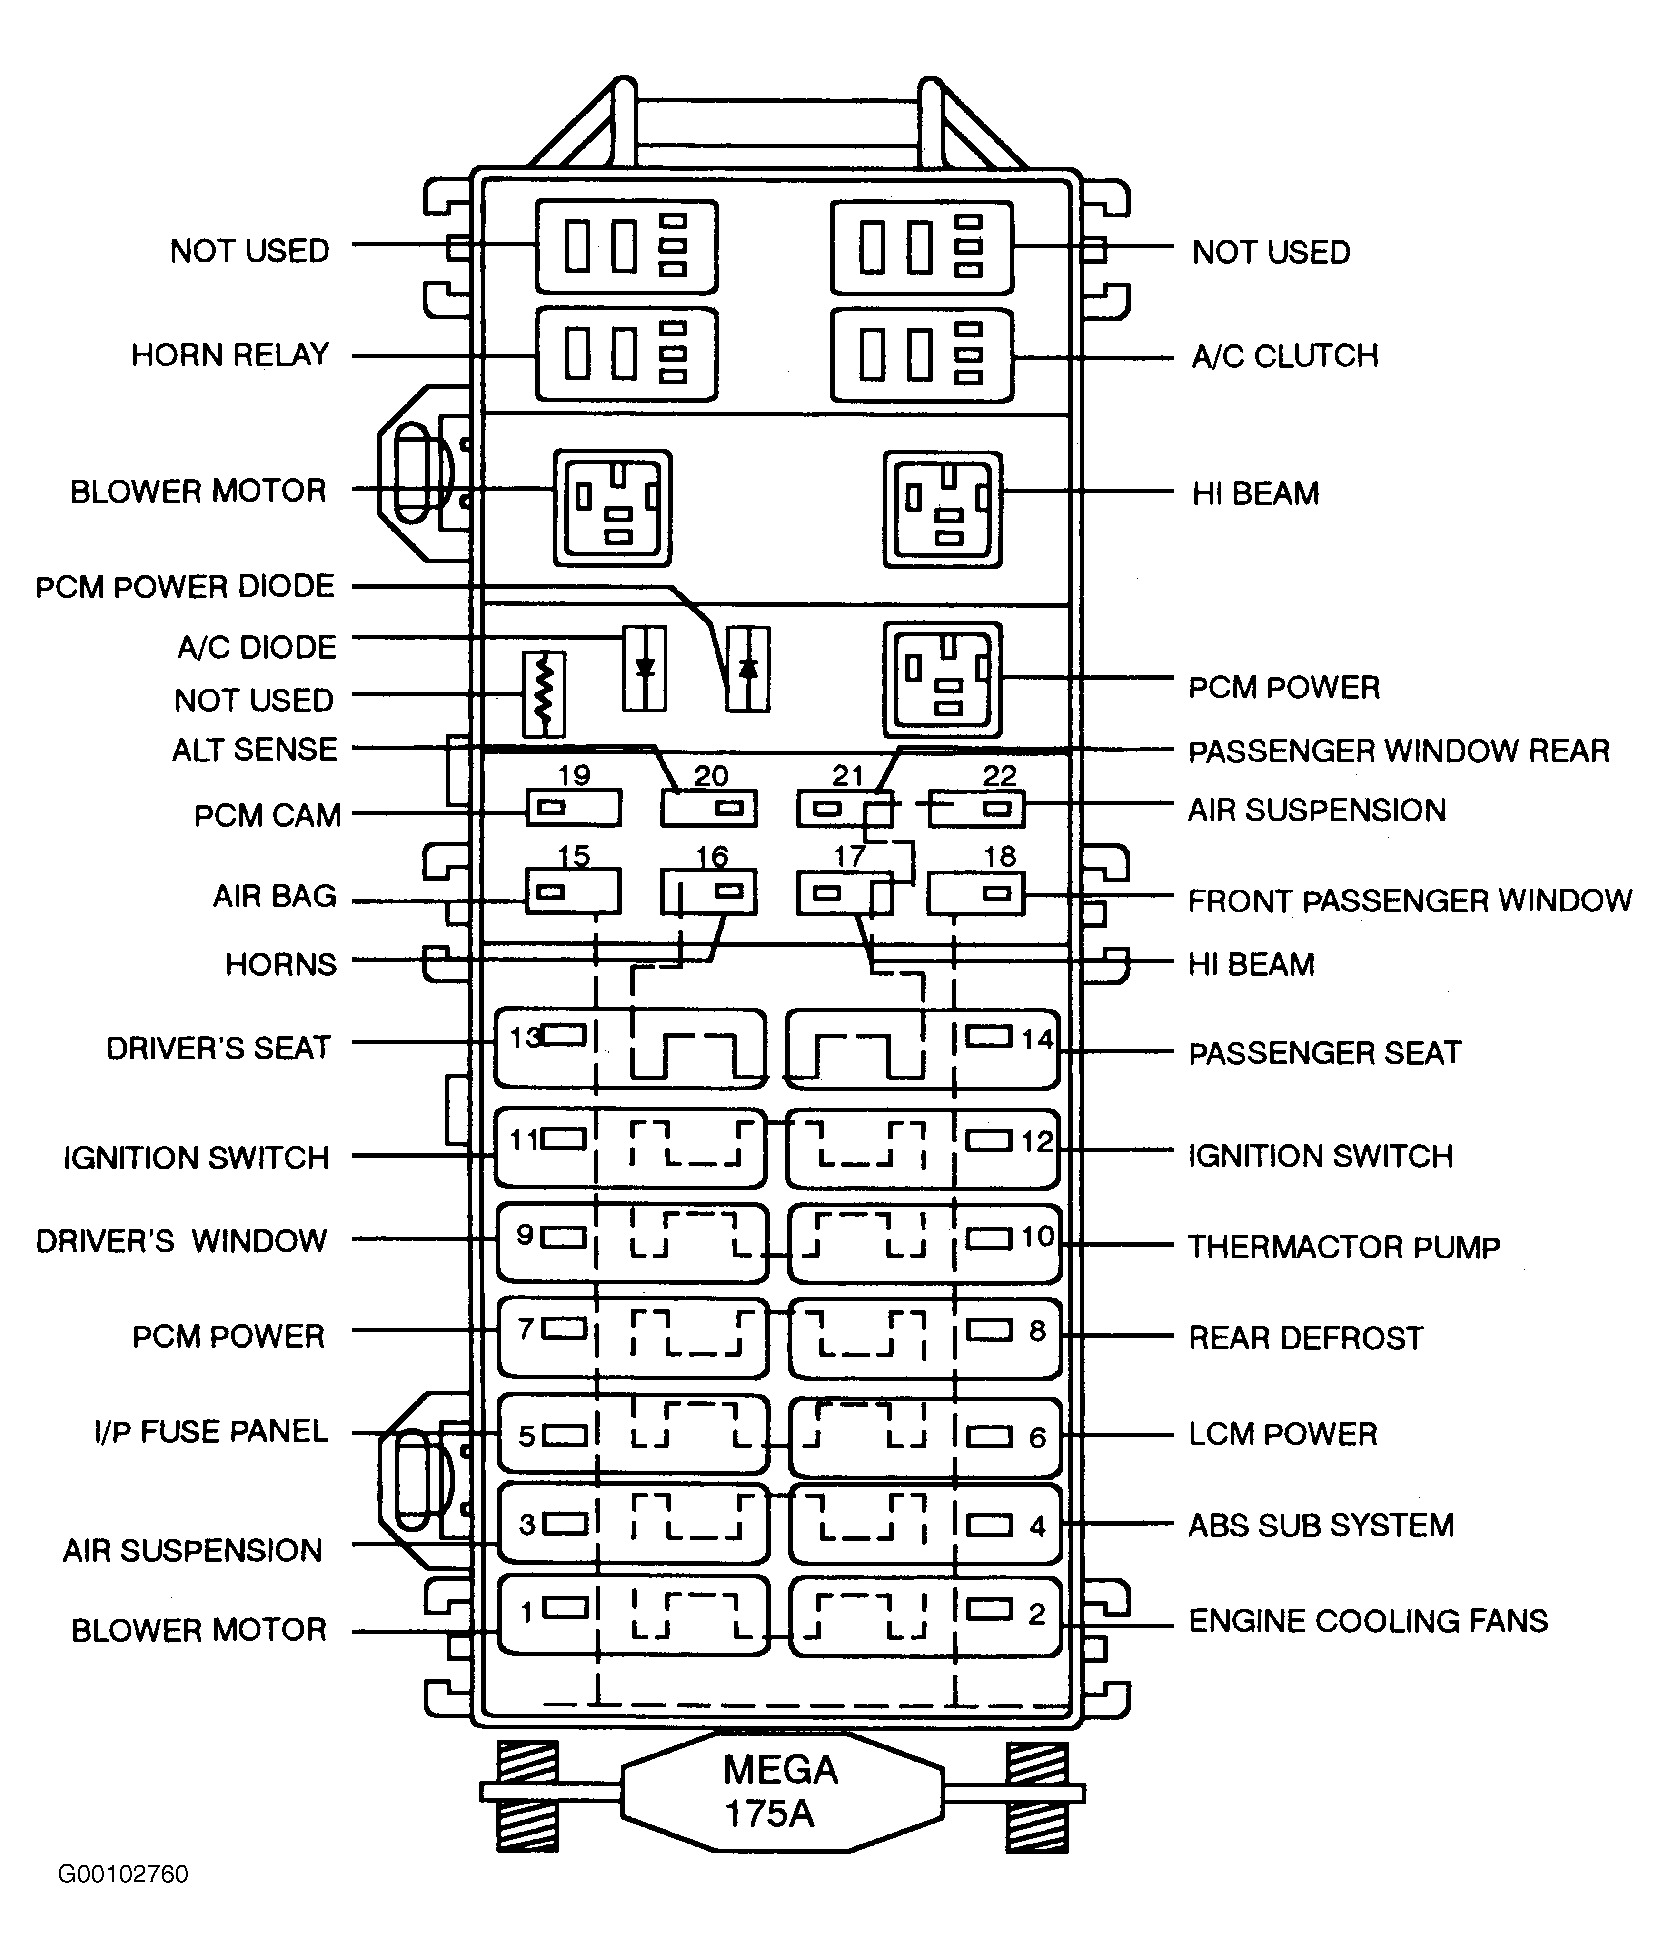 diagram] 02 lincoln blackwood fuse box diagram wiring schematic full  version hd quality wiring schematic - johnnydiagram.cadutacapelli365.it  cadutacapelli365.it